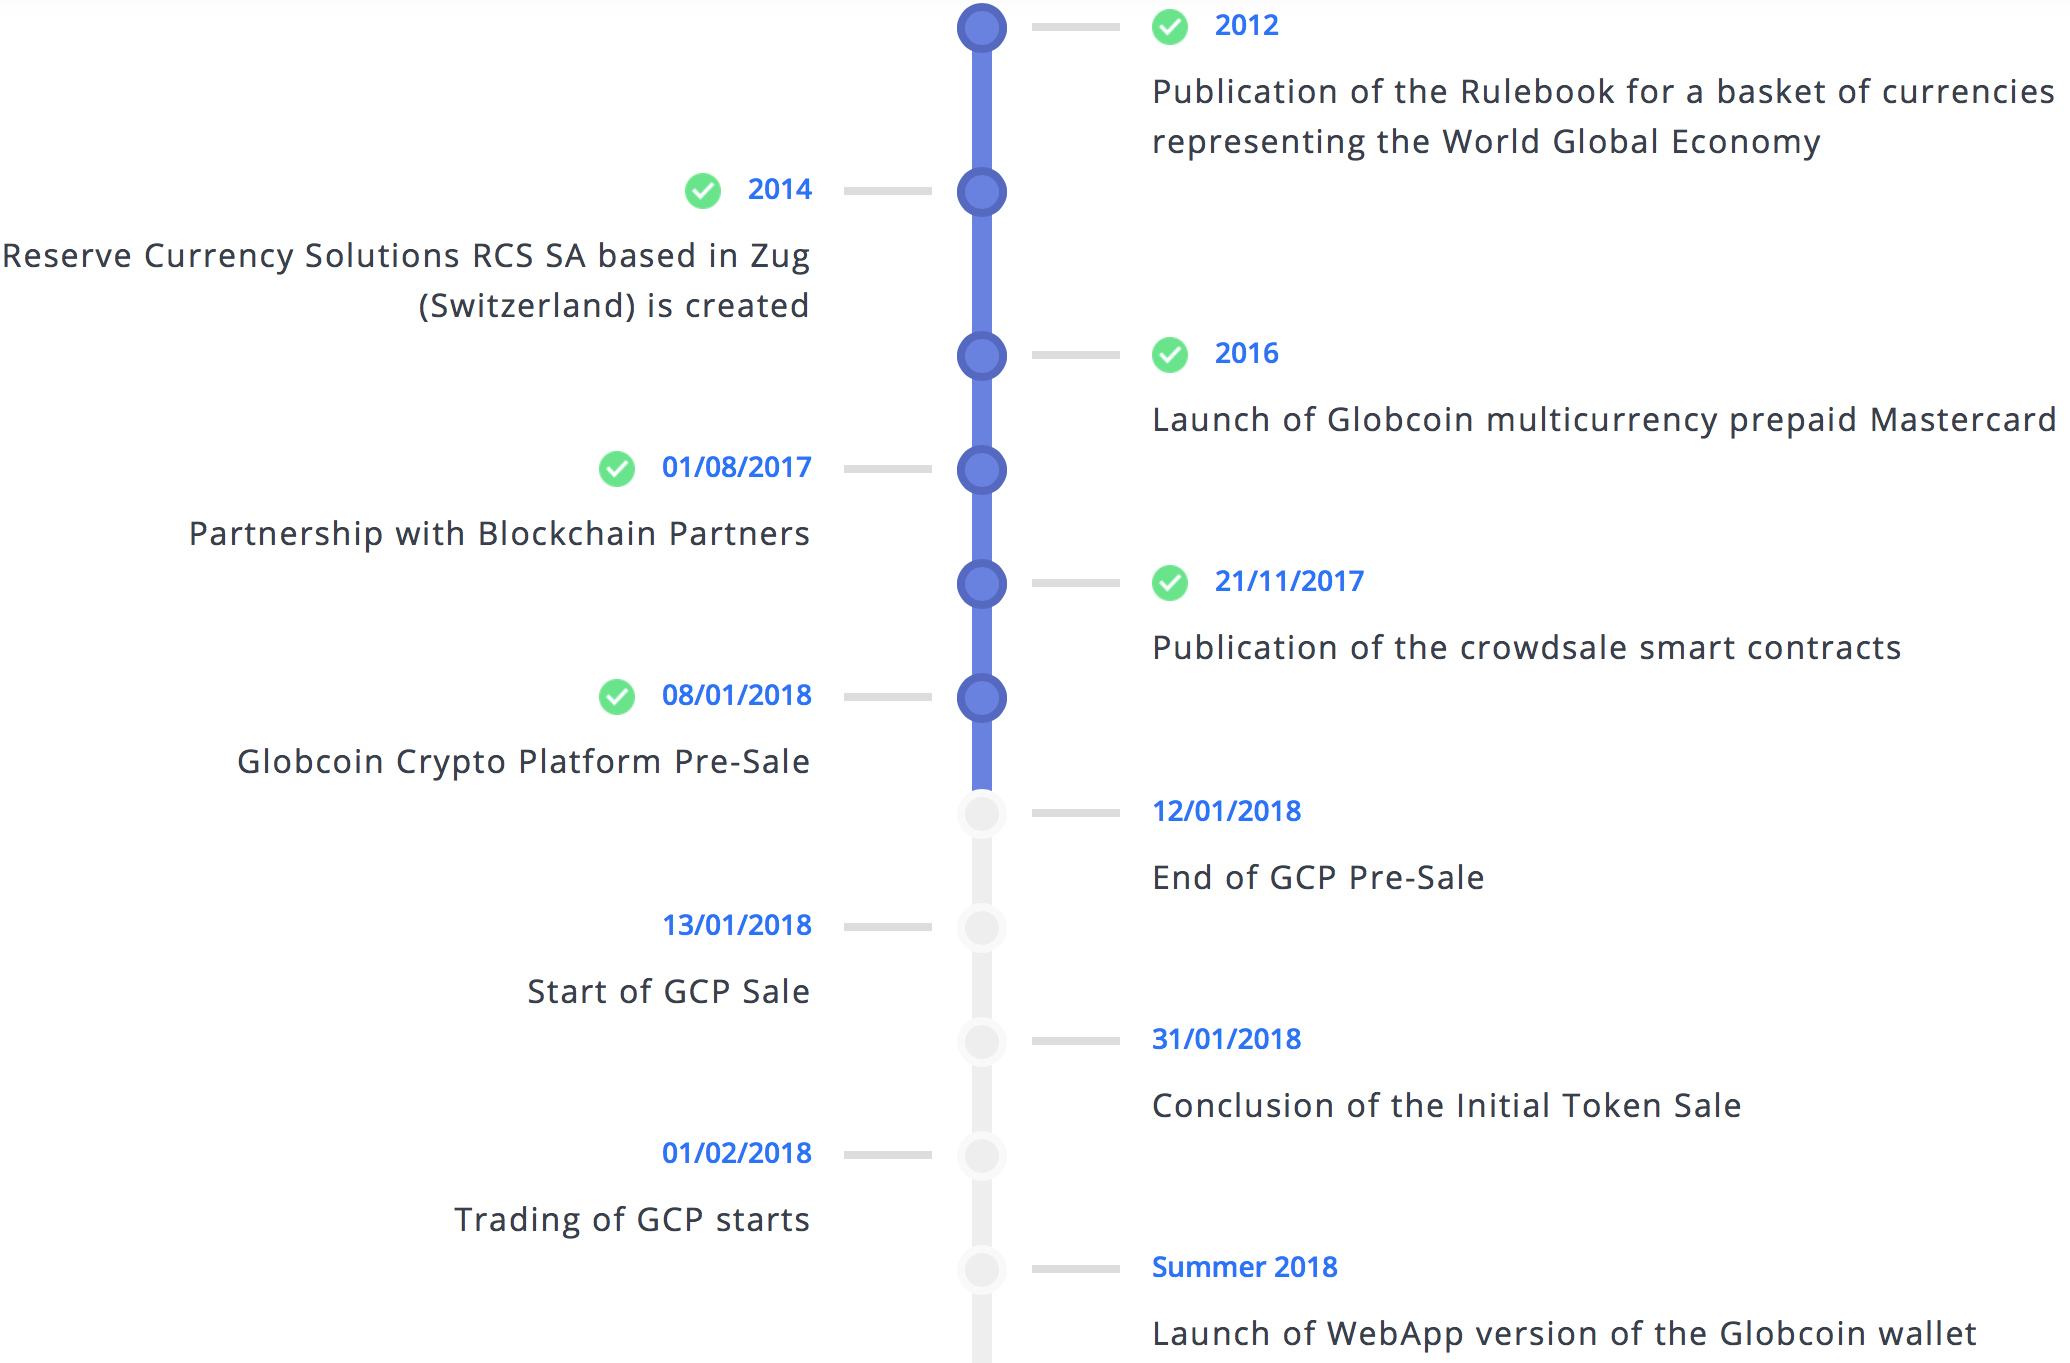 globcoinroadmap1.png